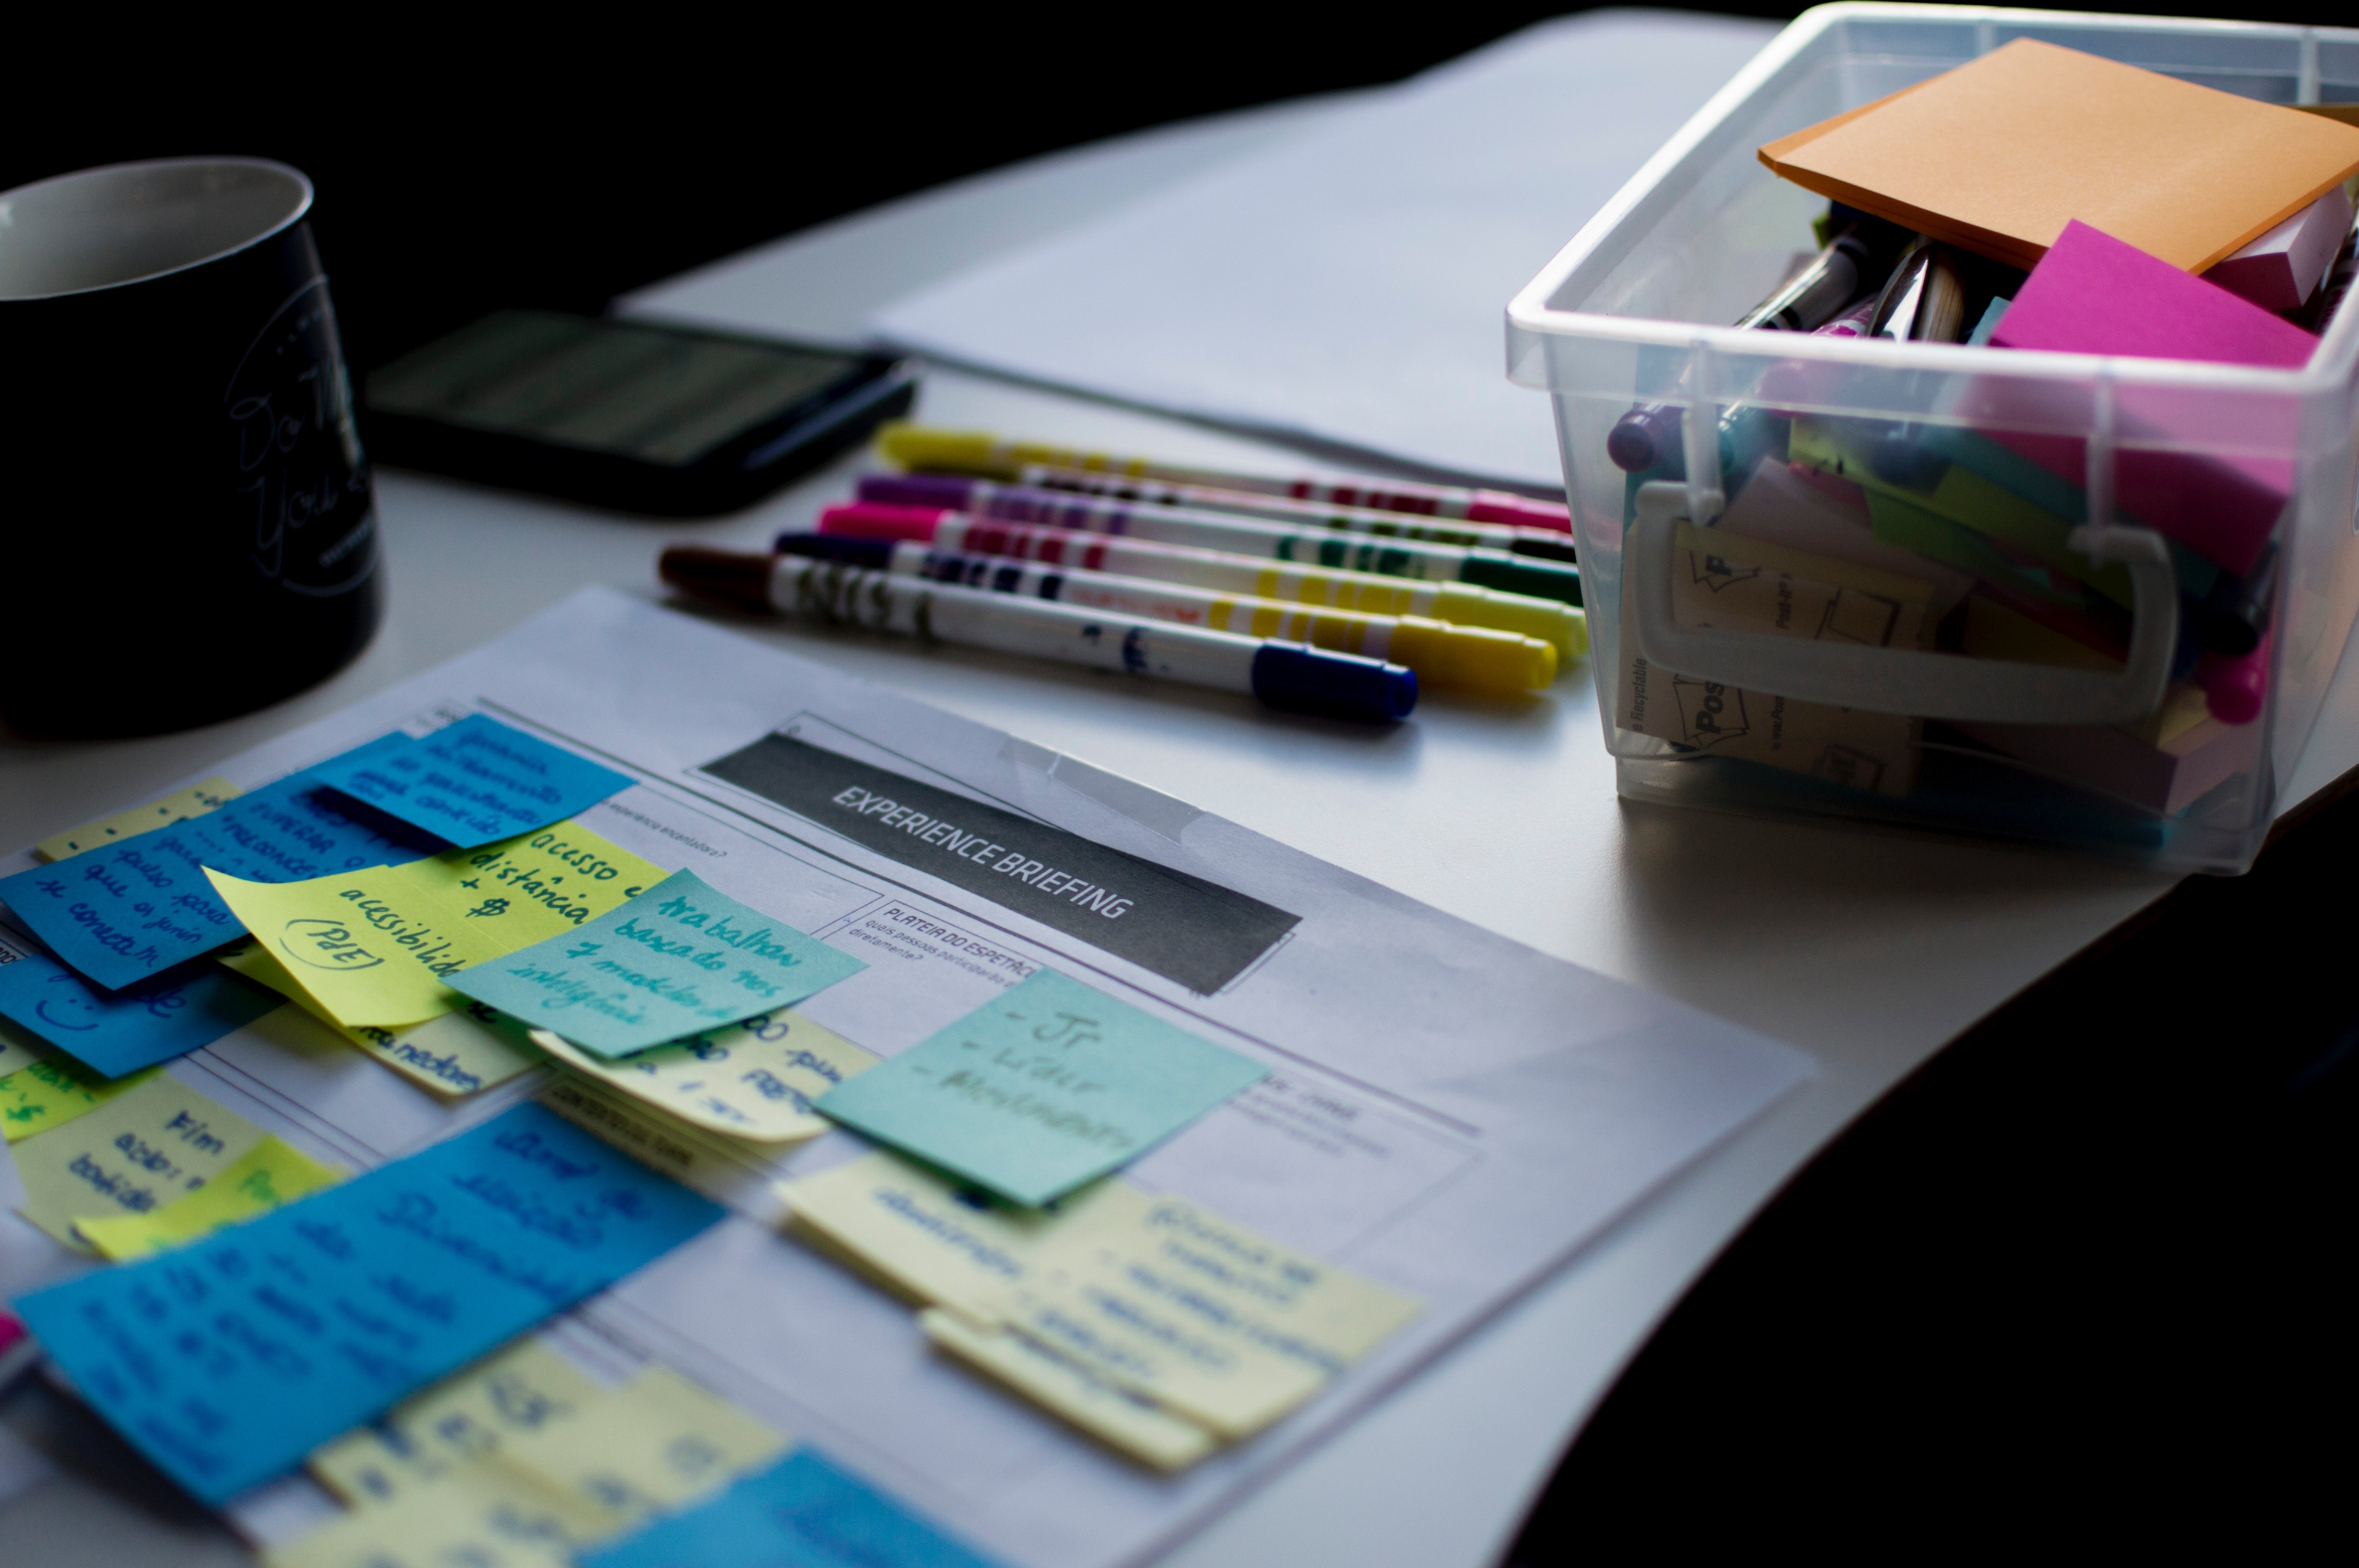 20 Project Ideas to Kickstart Your UX Career - UX Collective